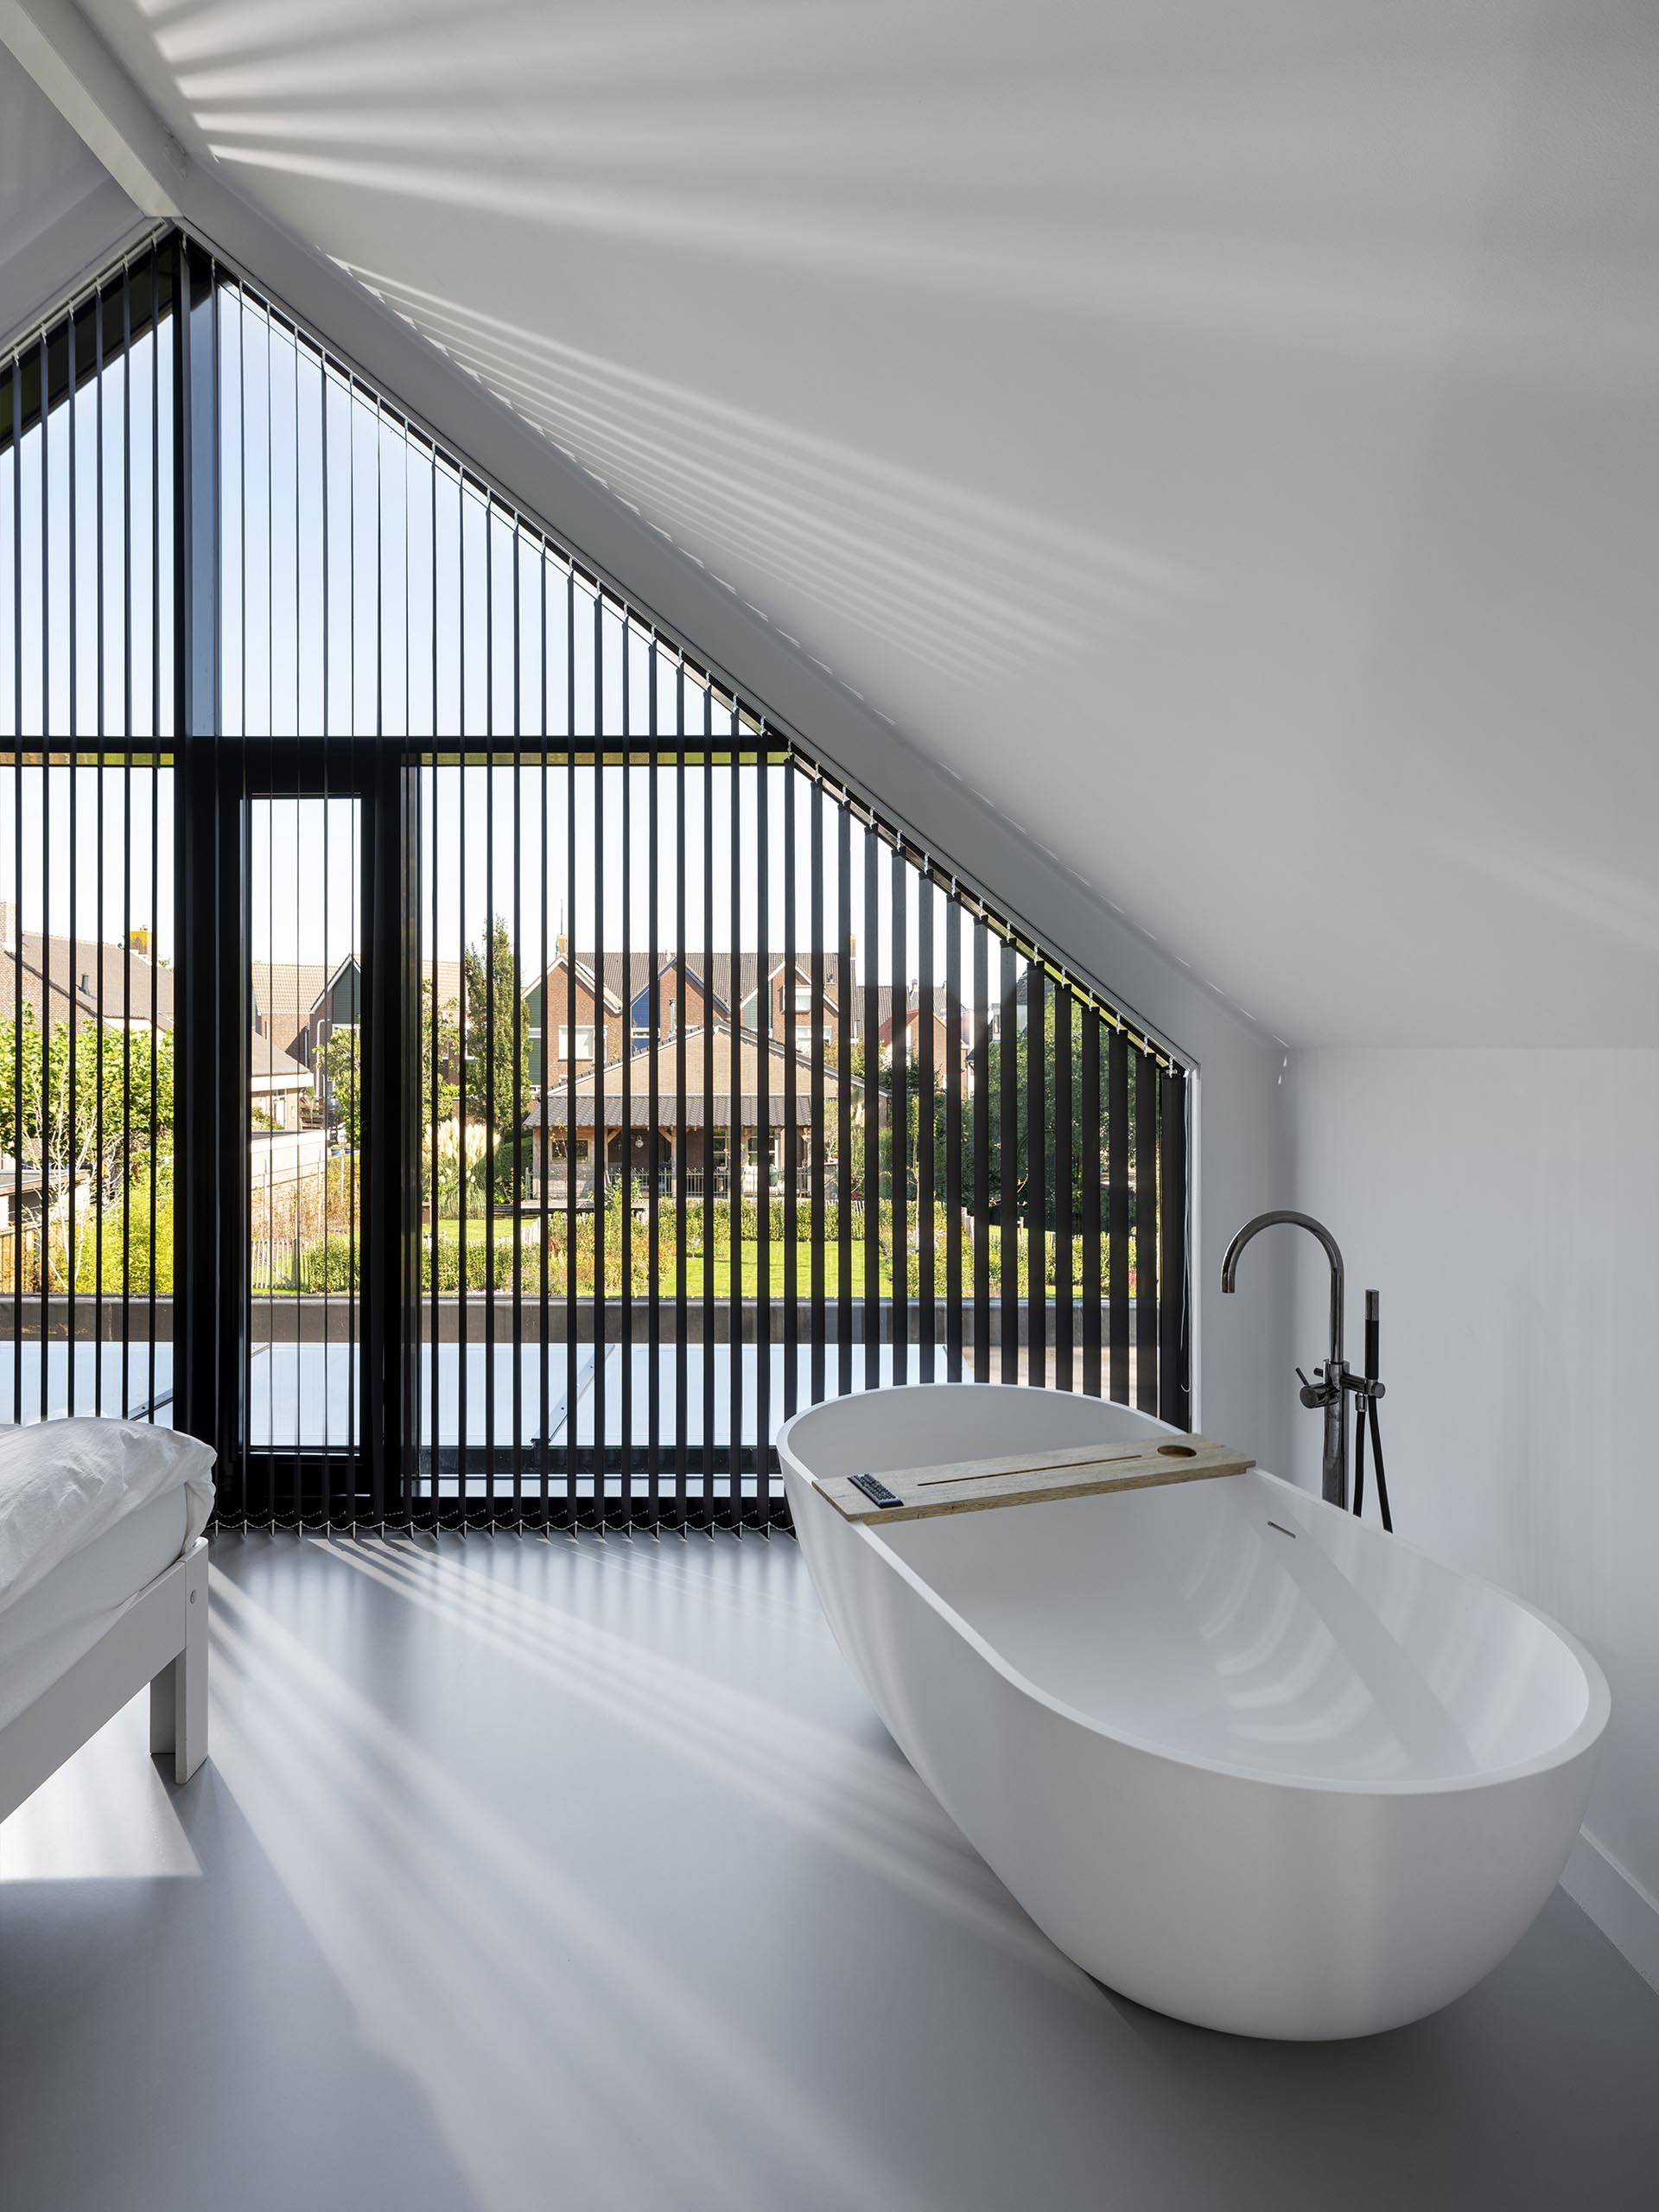 This modern master bedroom has windows that match the roof line and a freestanding bathtub.